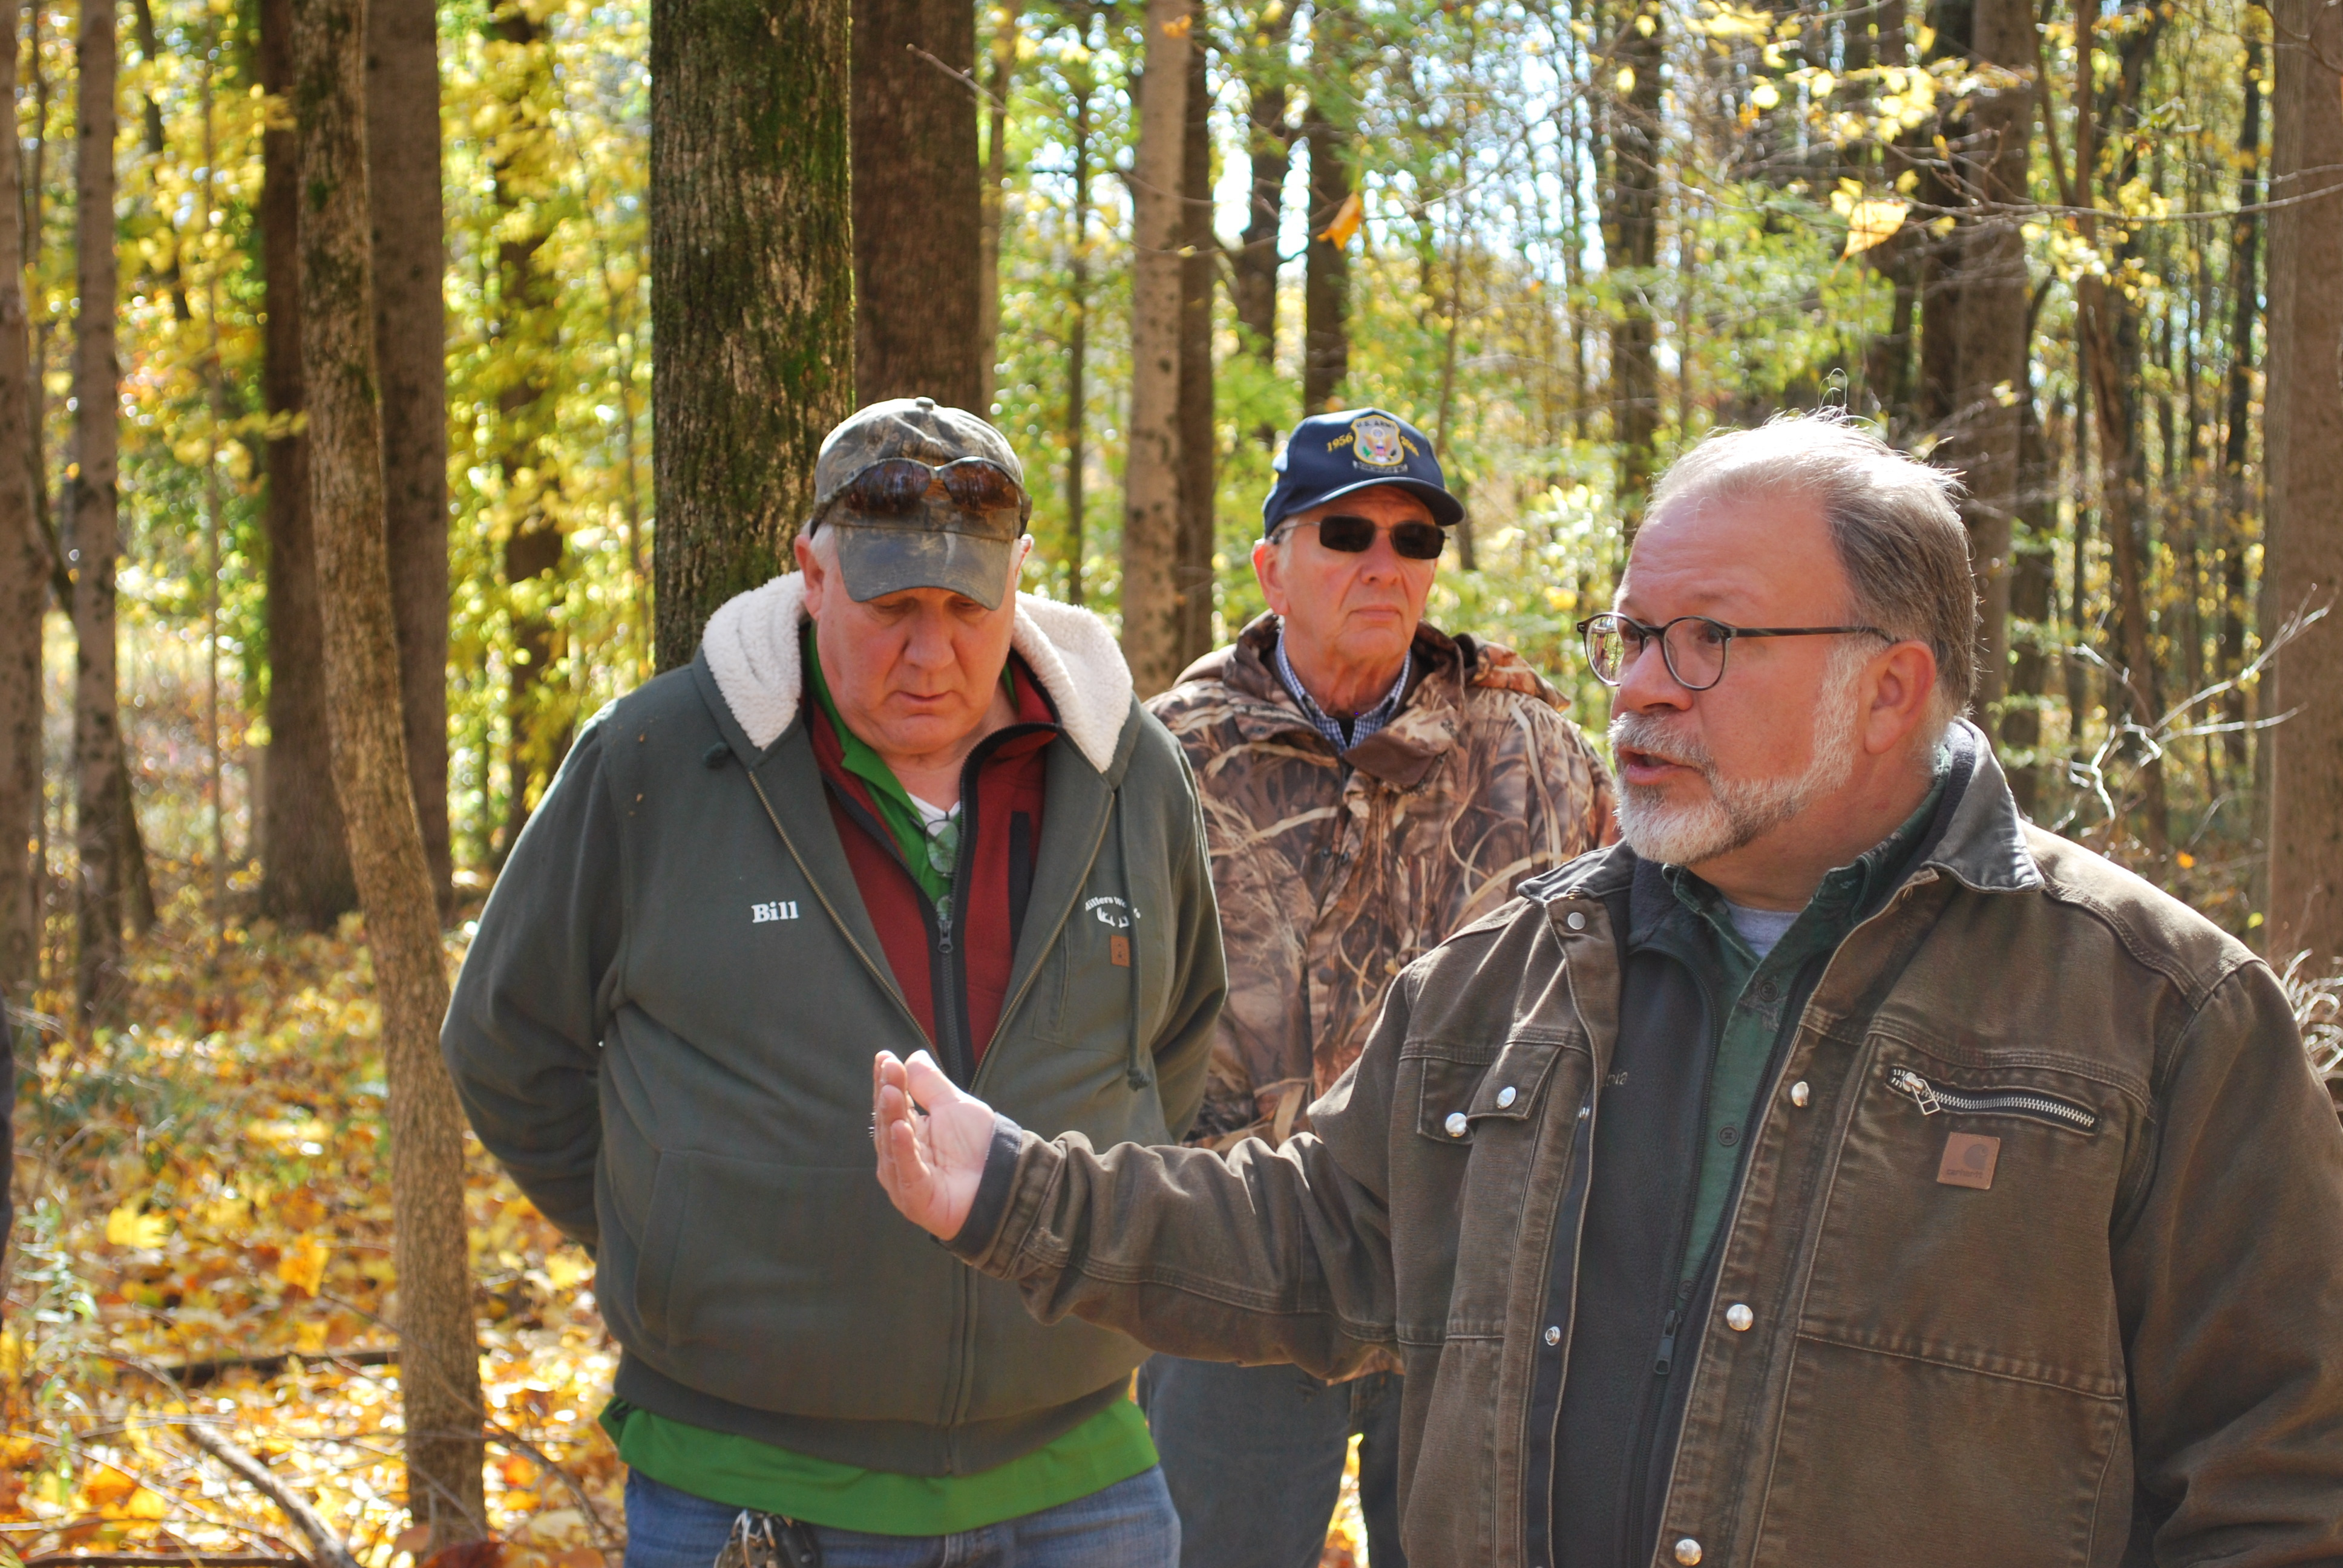 Lenny Farlee explaining forestry practice in the woods